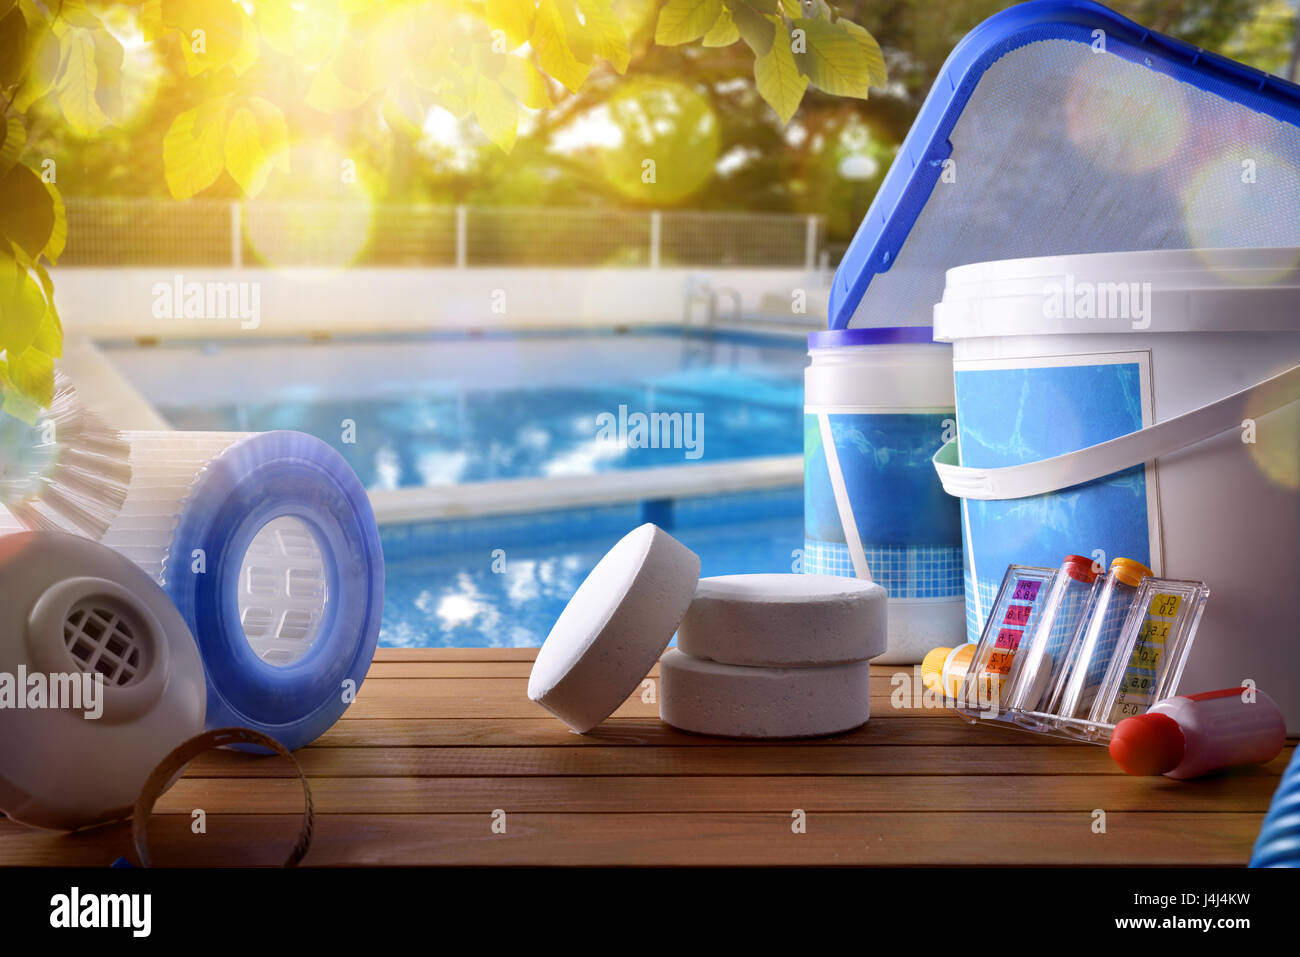 Swimming pool service and equipment with chemical cleaning products ...